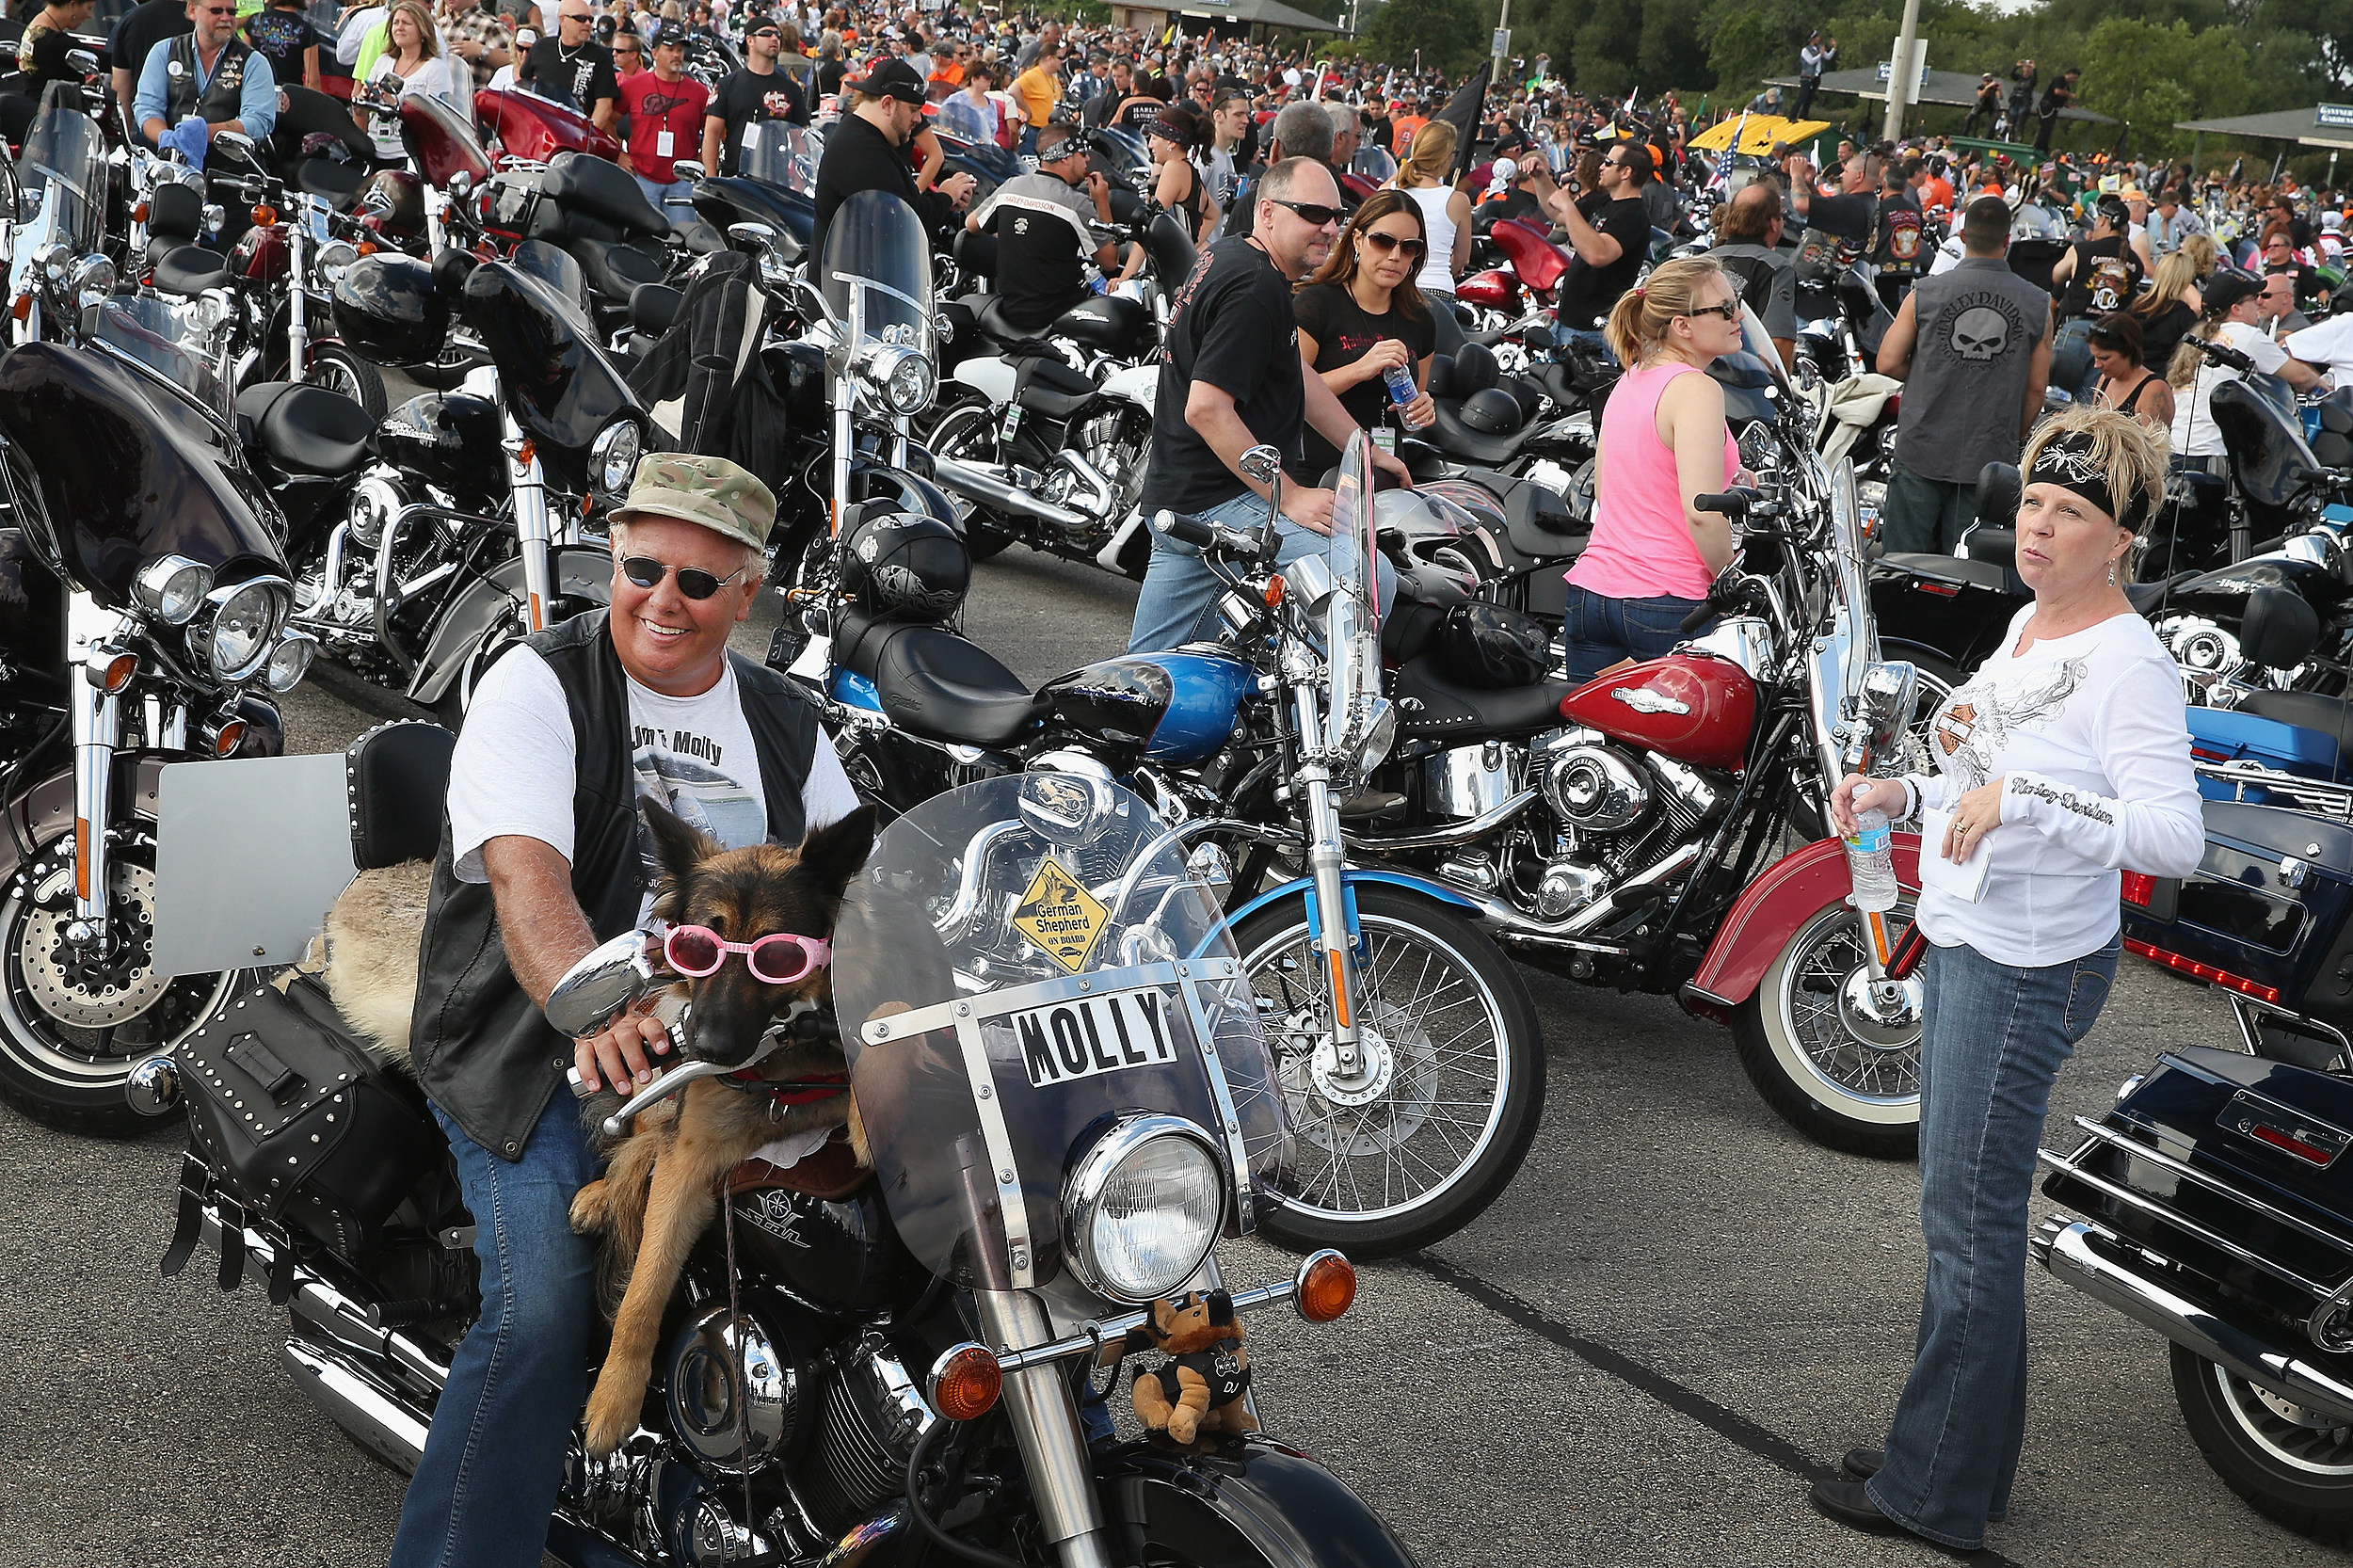 motorcycle run to promote motorcyclist rights